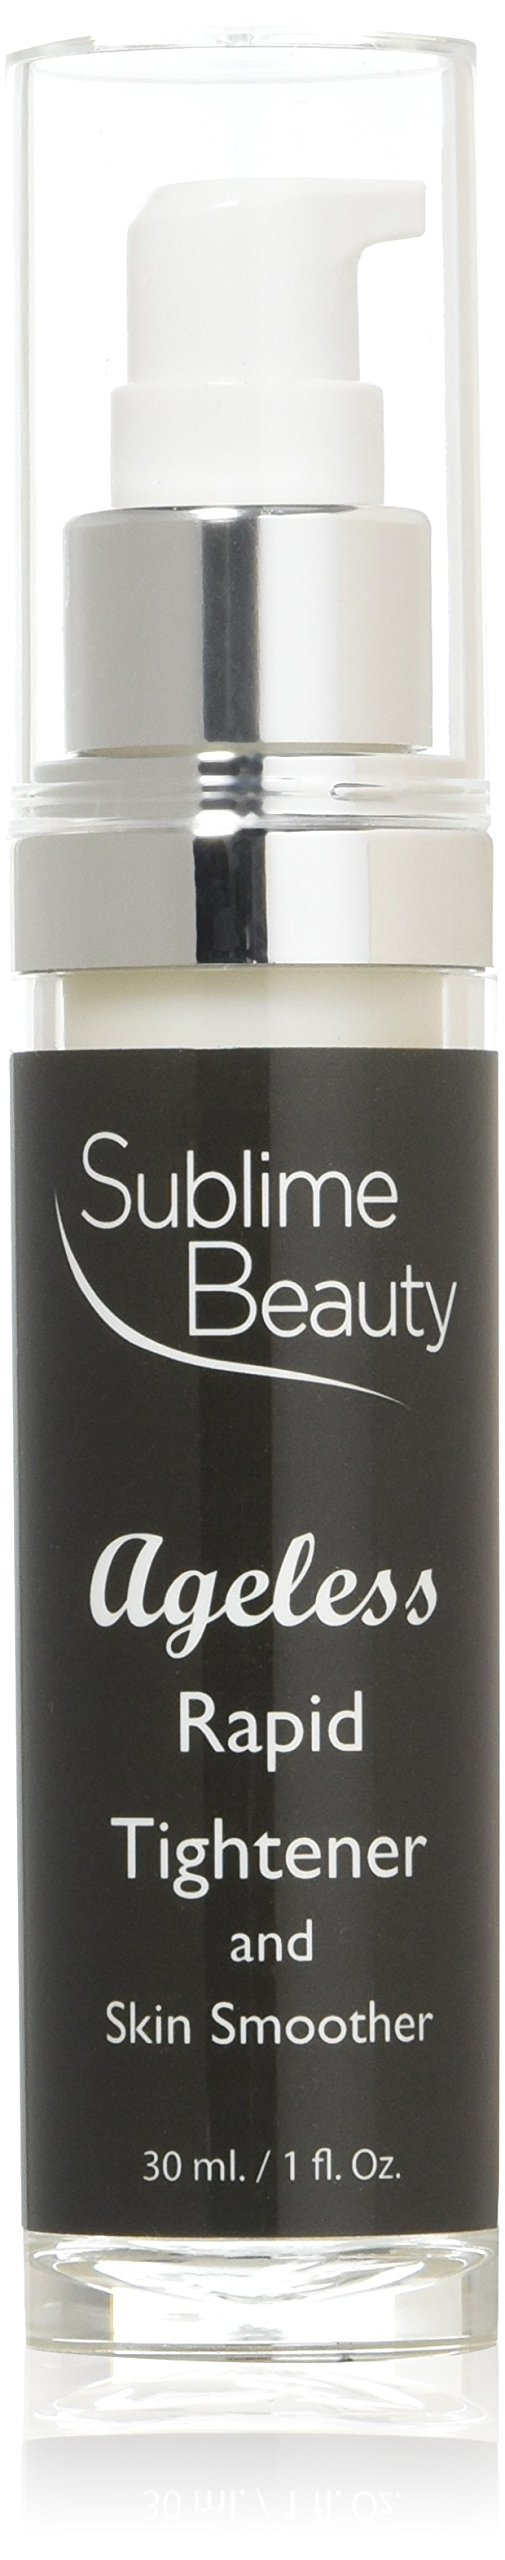 AGELESS RAPID TIGHTENER and SKIN SMOOTHER with SesaFlash from Sublime Beauty, 1 oz. Anti Aging Serum Blurs Lines & Wrinkles Fast + No Flaking.